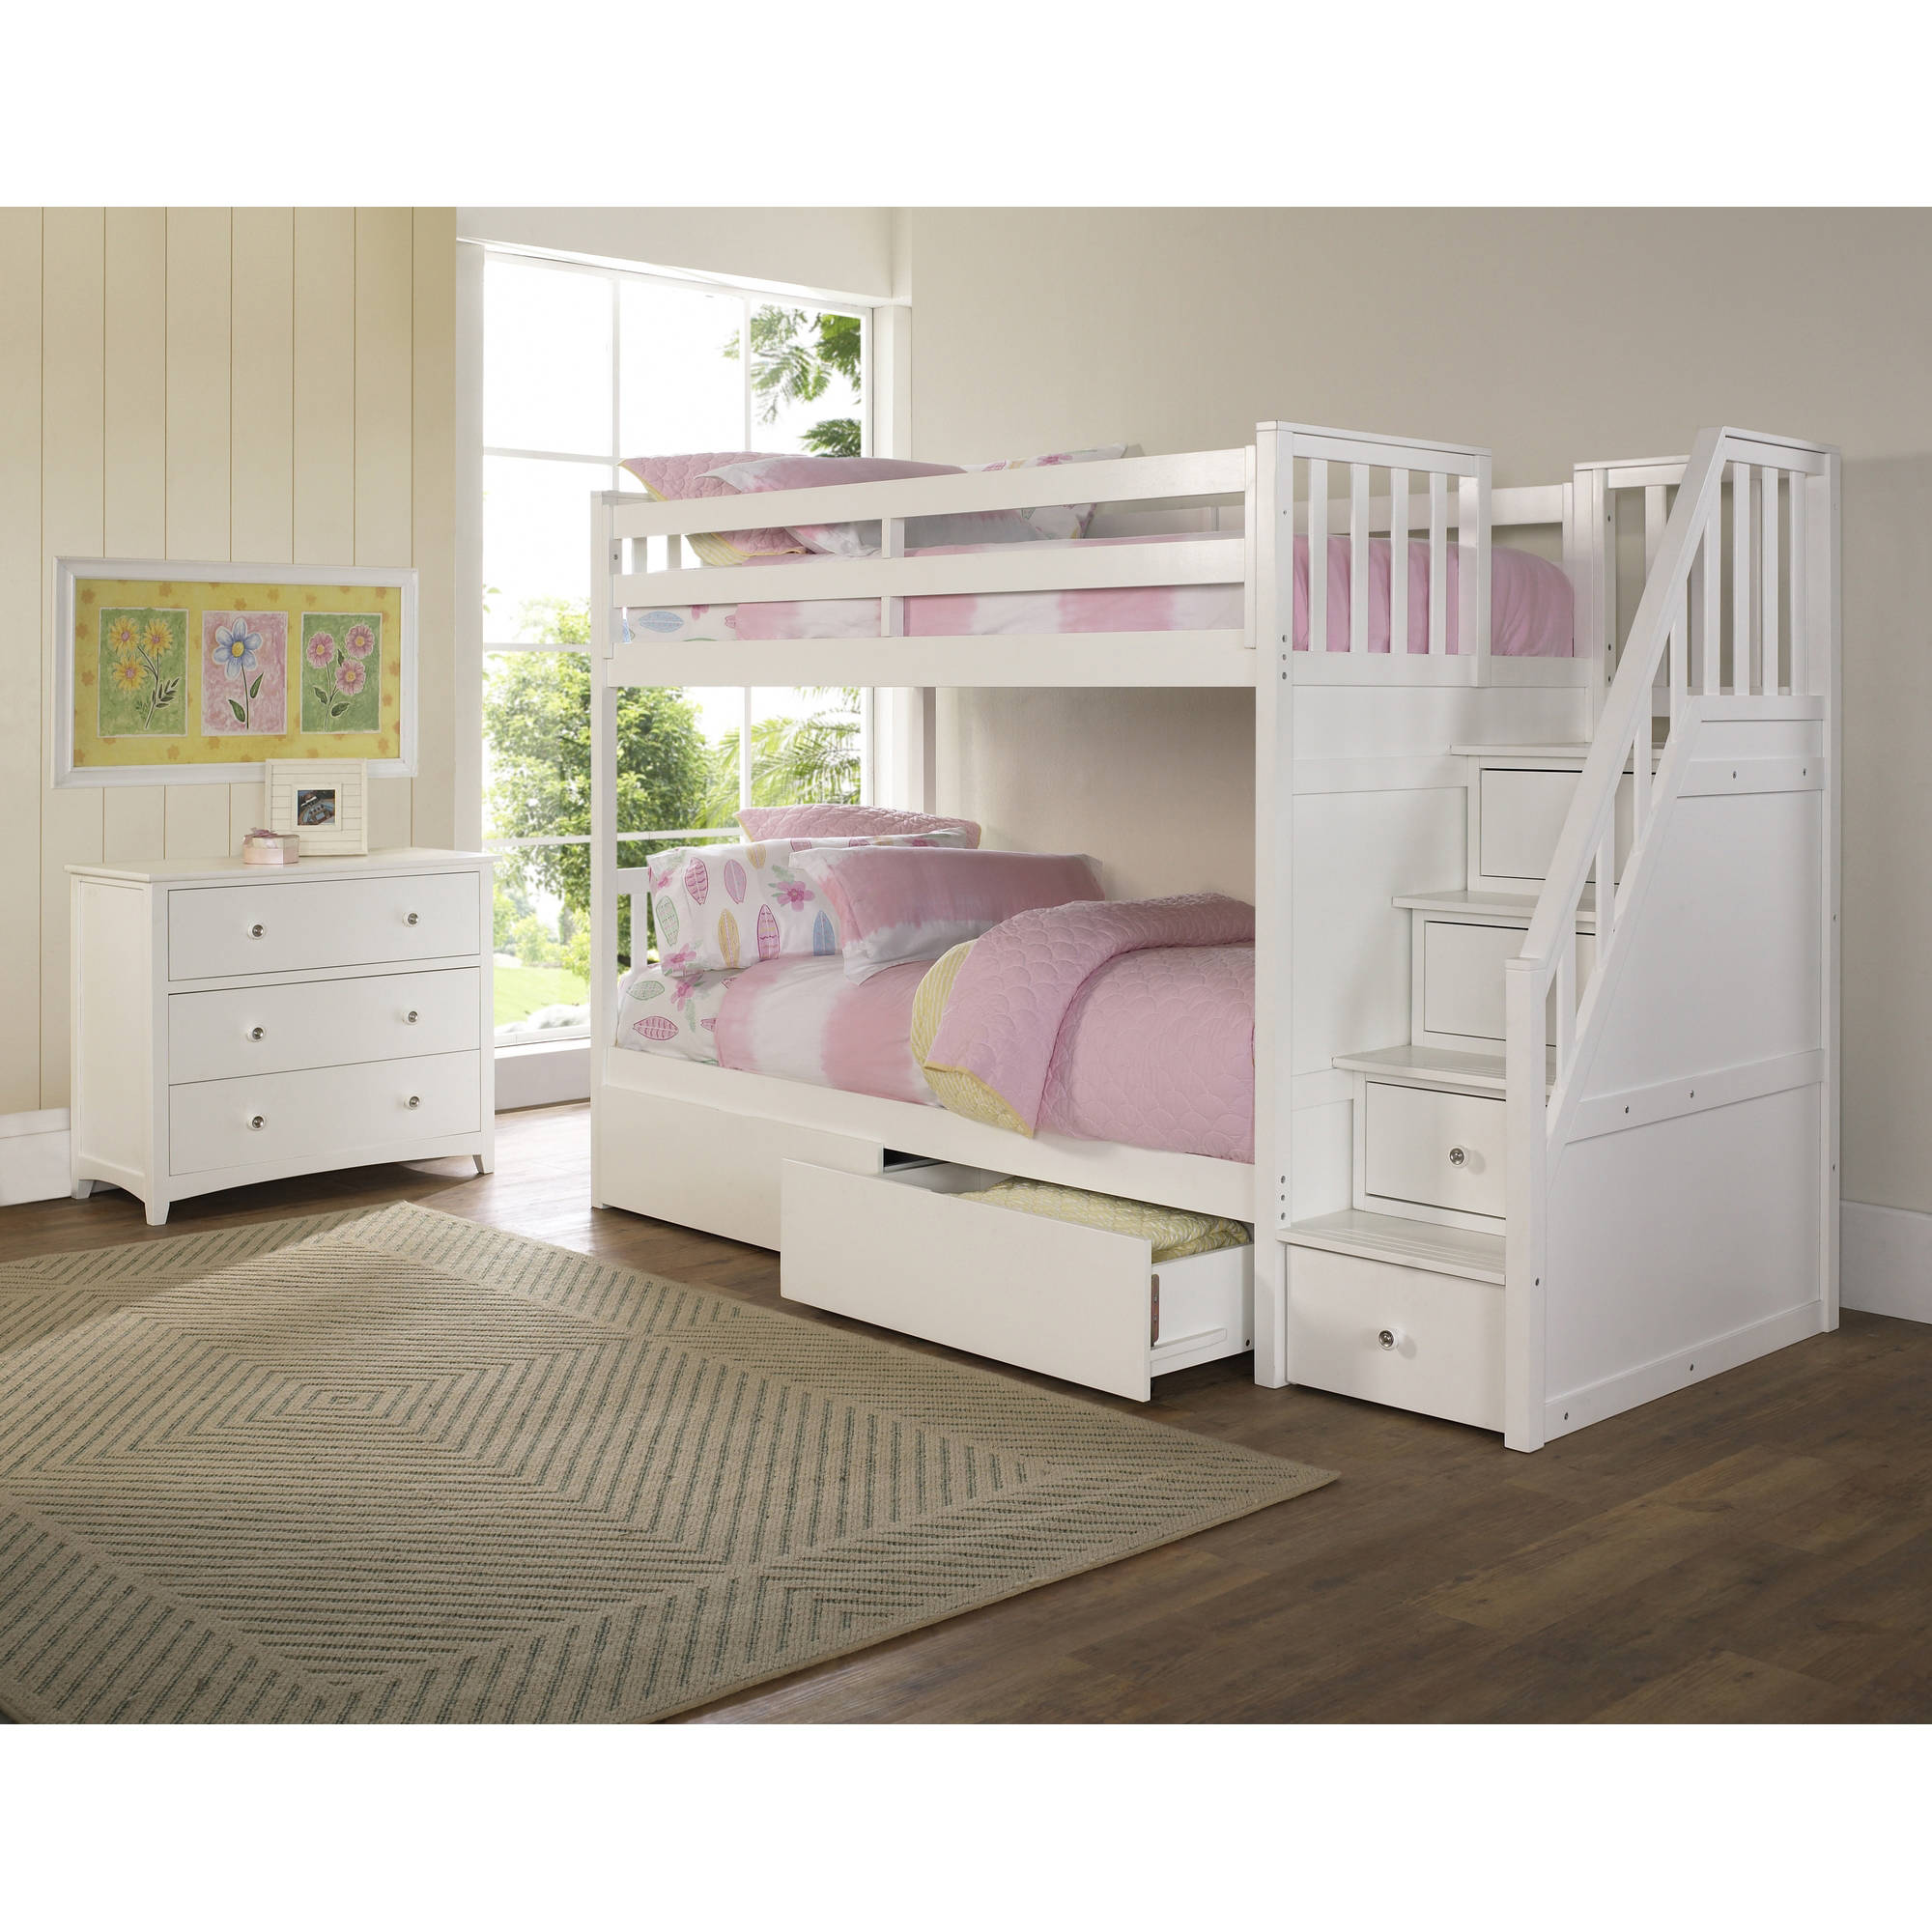 Hillsdale Furniture Barrett Stair Bunk Bed With Storage Drawers